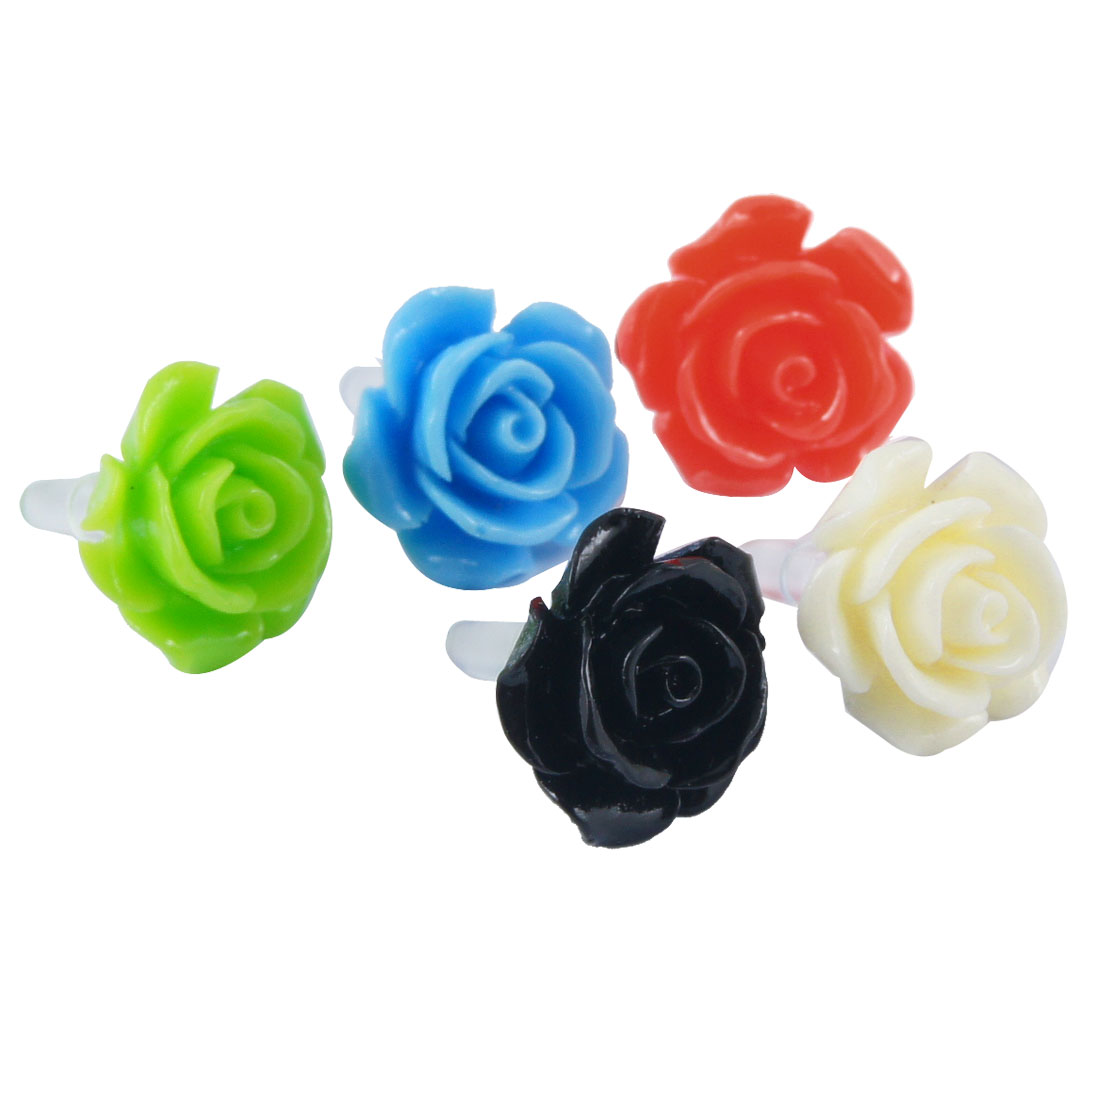 5 Pcs Colored Flowers Decor Anti Dust 3.5mm Earphone Jack Stopper for Cell Phone